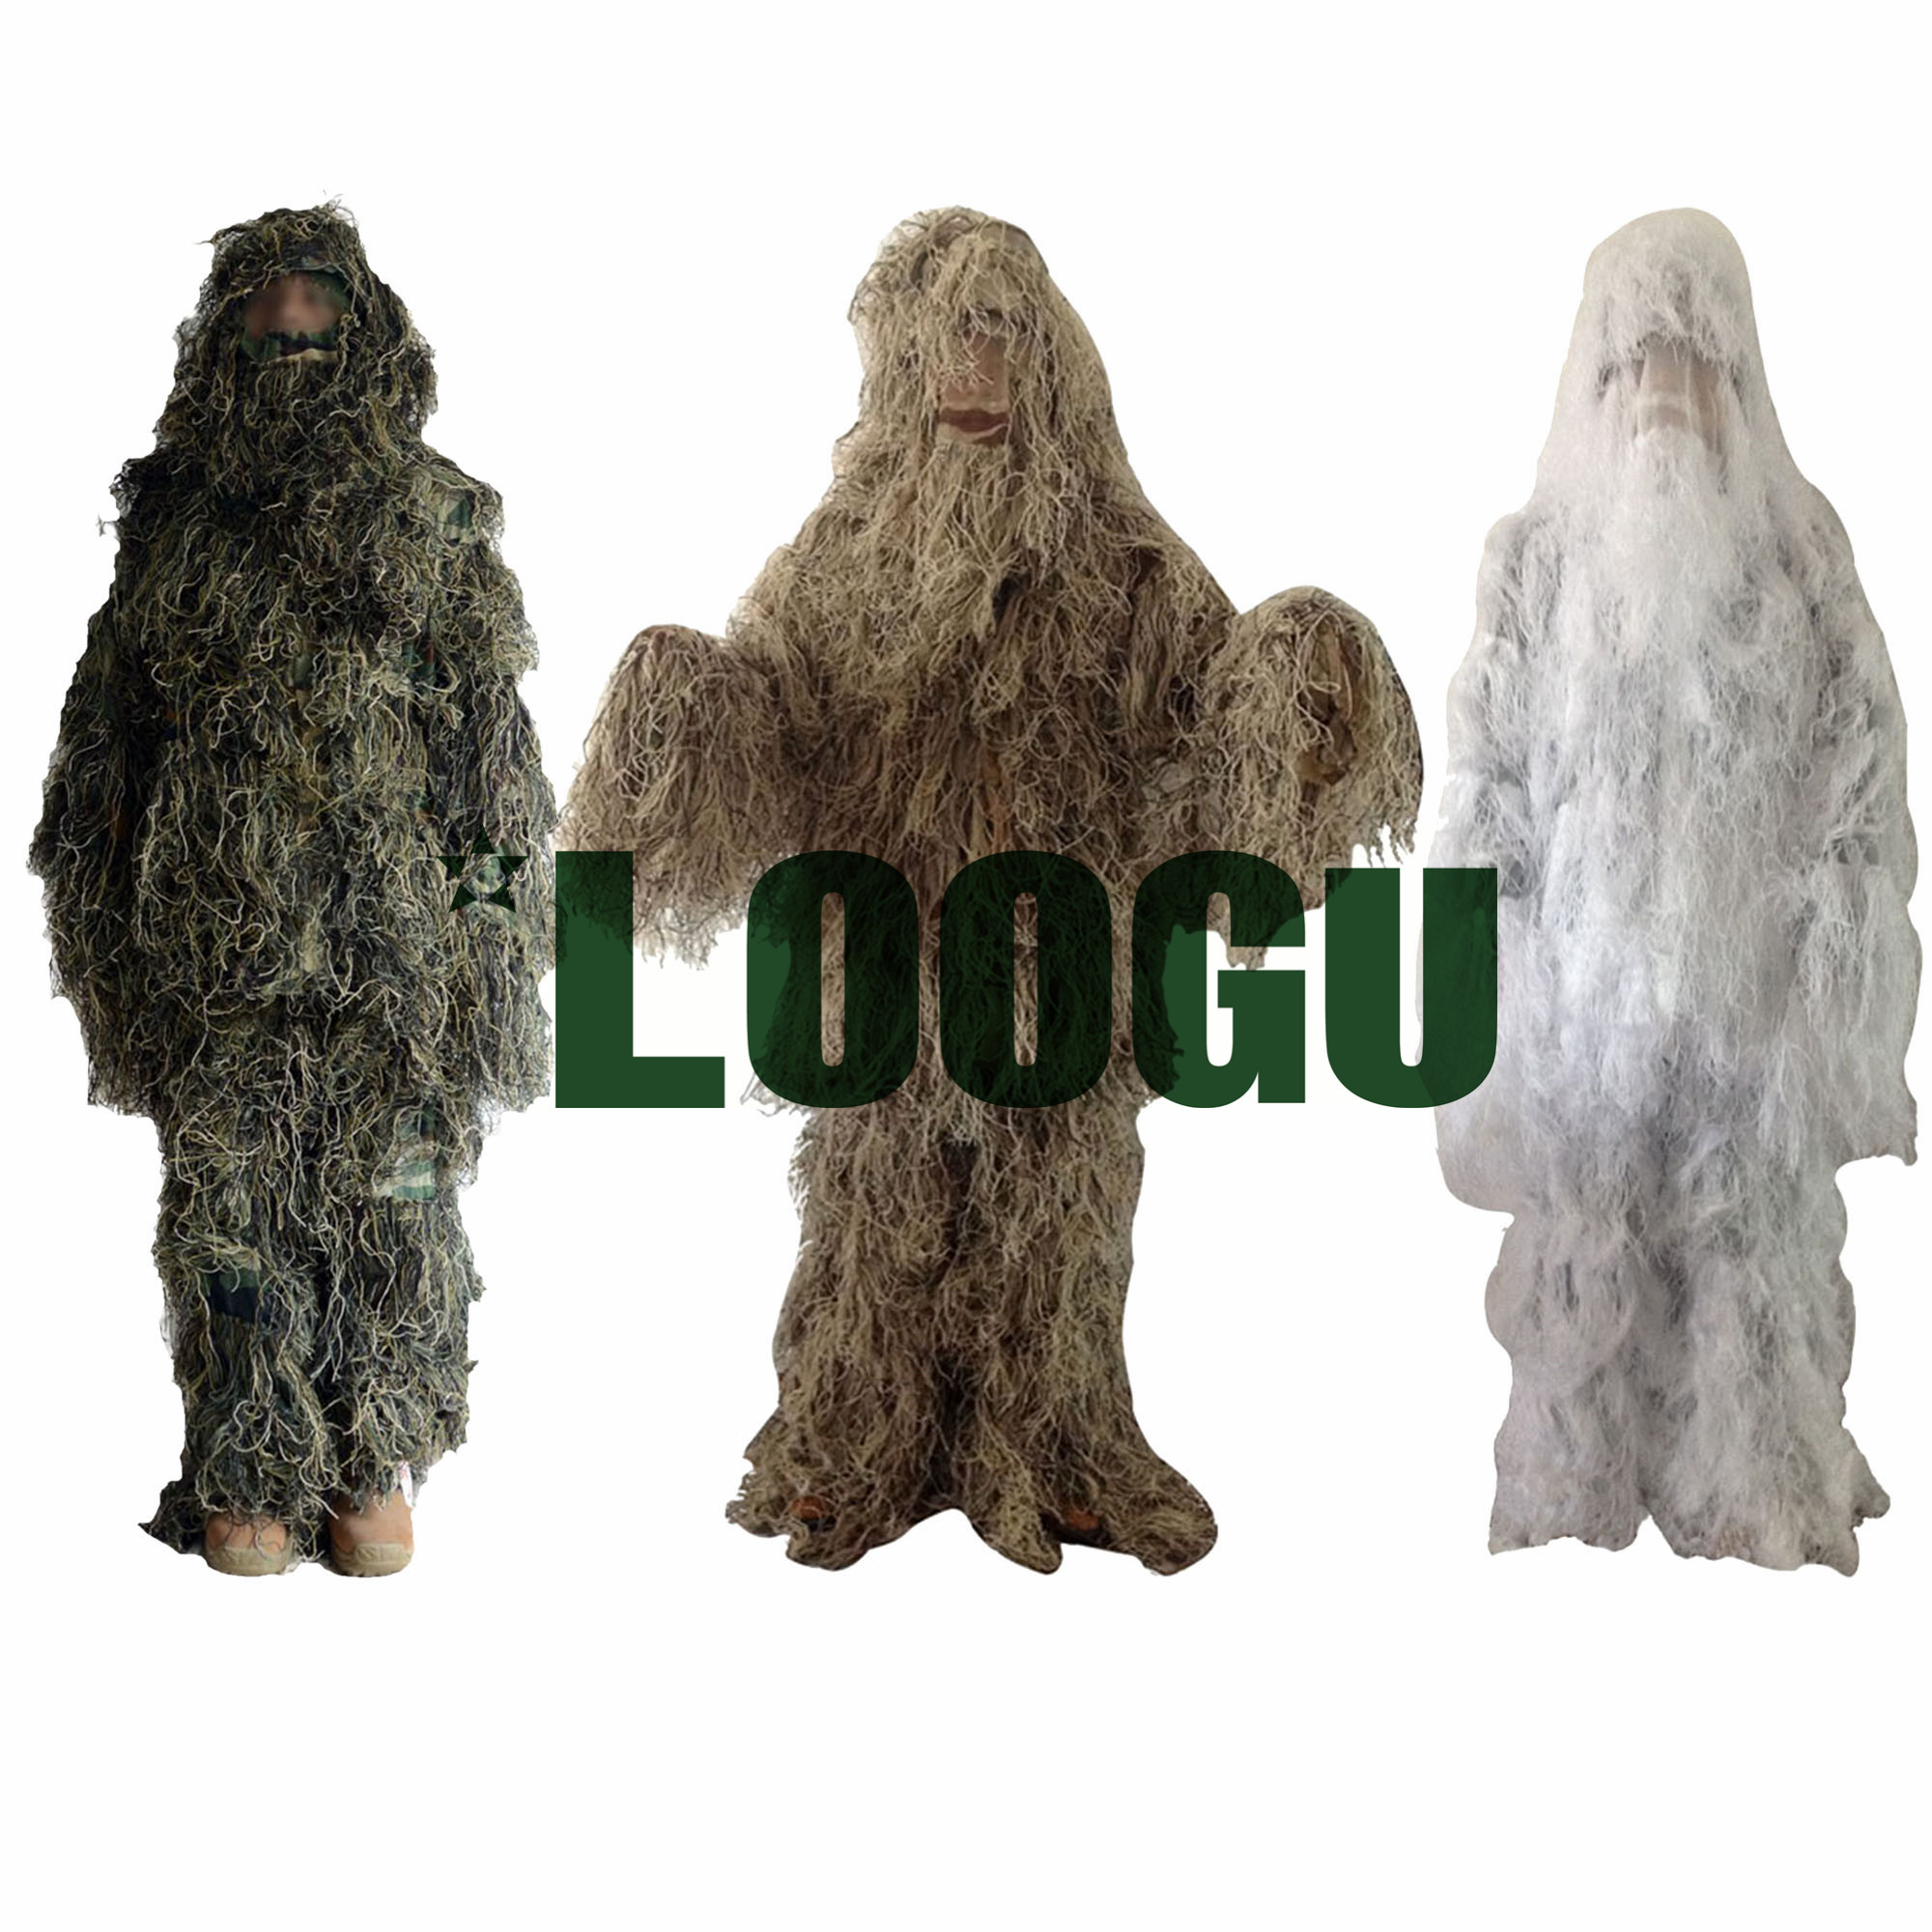 LOOGU Tactical Camo Ghillie Suit Camouflage Jungle Hunting Birding Military Durable Sniper Camouflage Hunting Shade Clothes military camouflage ghillie suit woodland grass hay style paintball leaf jungle sniper clothes hunting tactical shade clothing